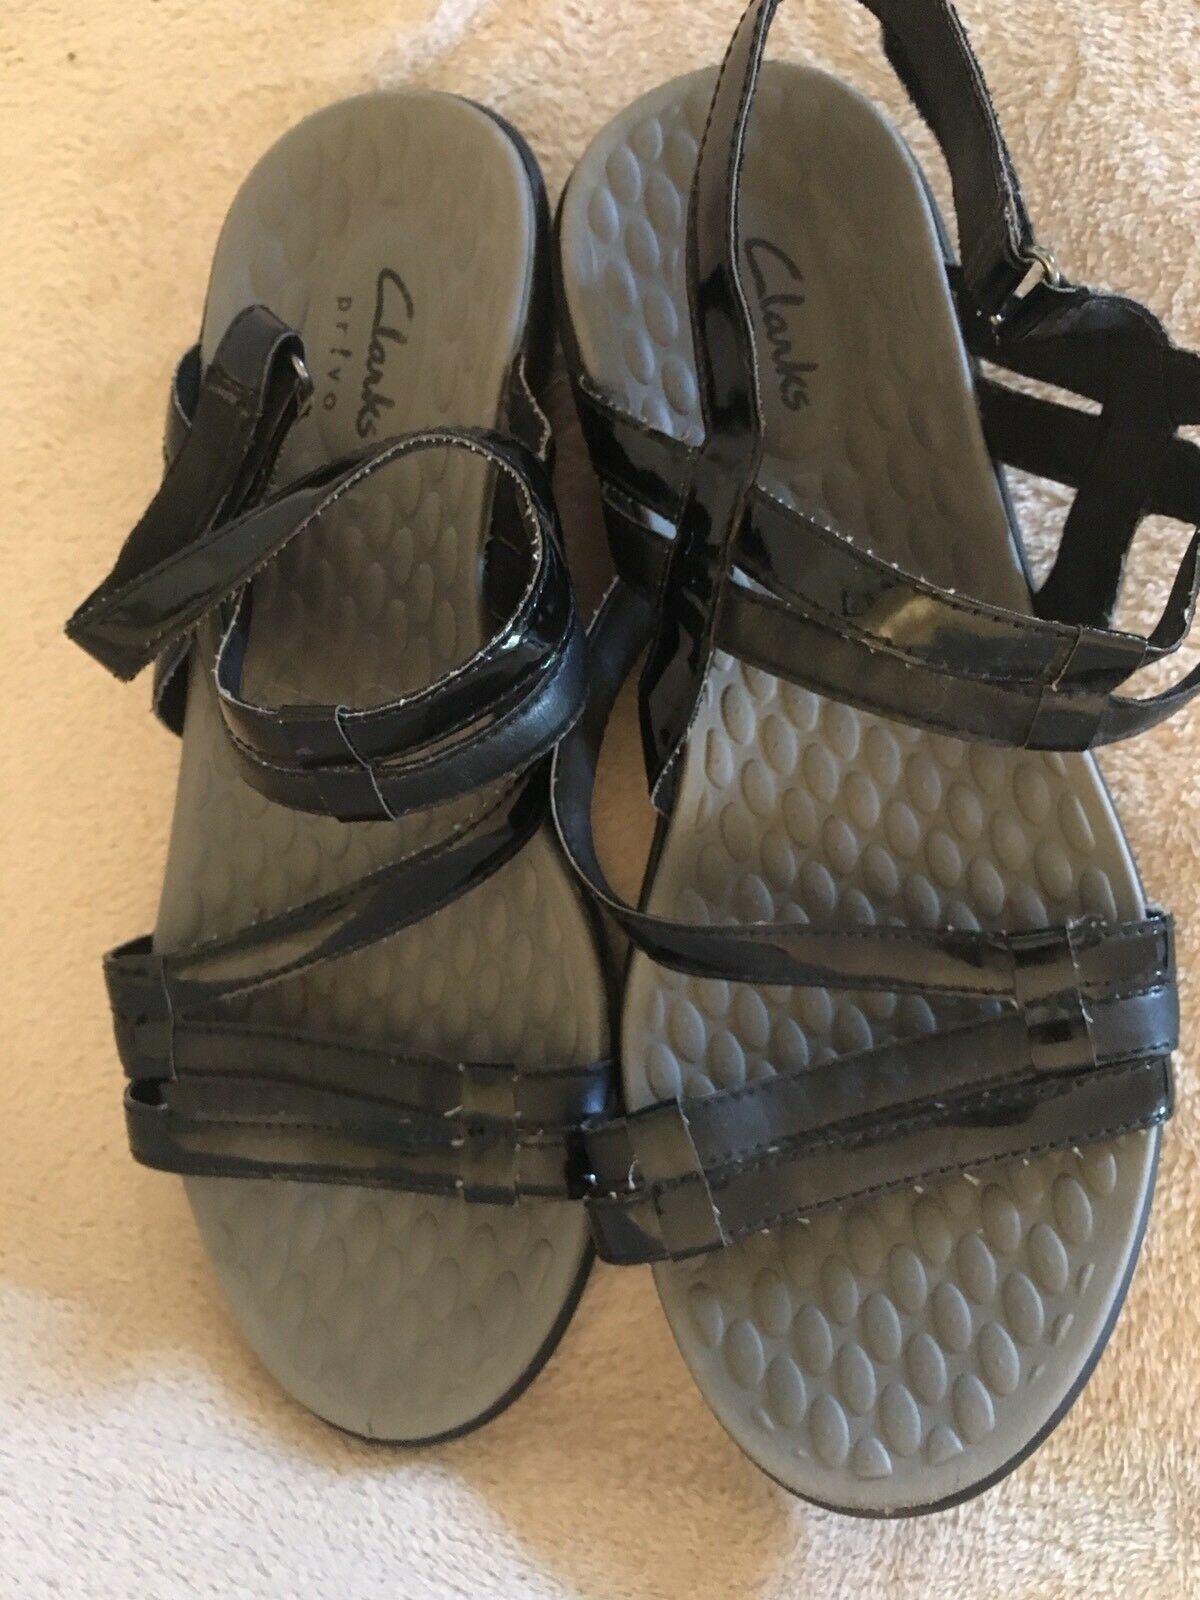 Man/Woman CLARKS PATENT so LEATHER SANDALS, 9 Not so PATENT expensive Brand Seasonal hot sale 7f16a7